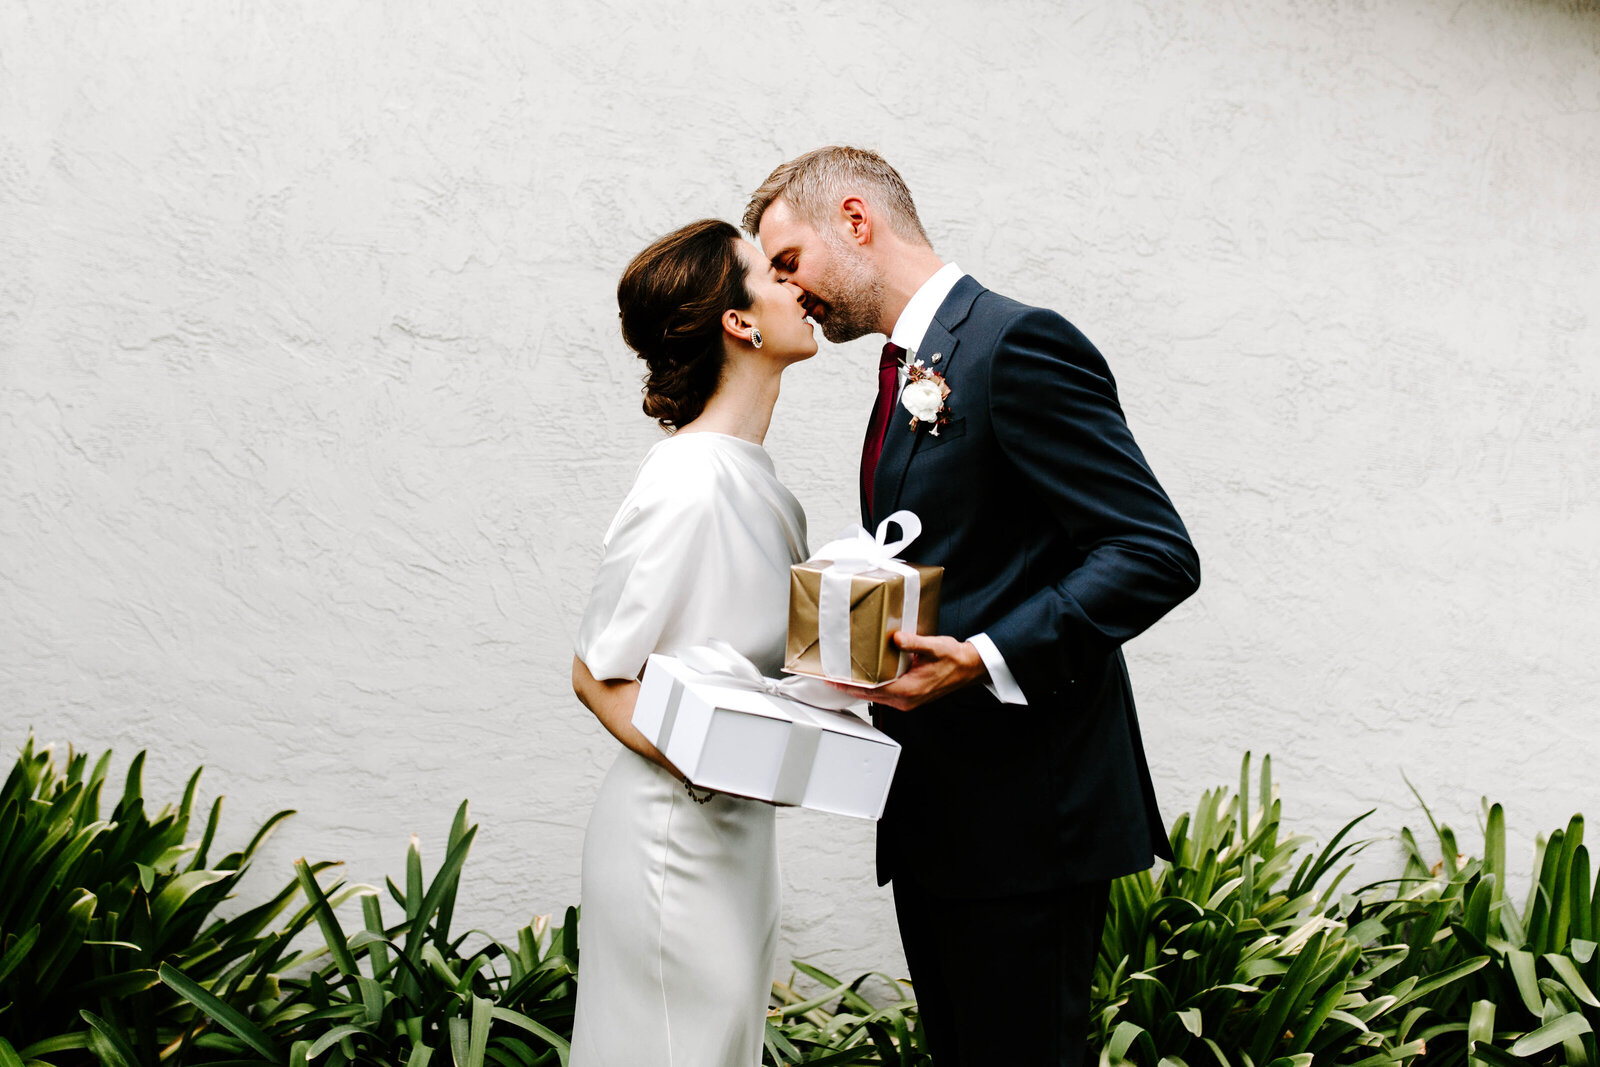 Hannah-Berglund-Photography_Audrey-Roger_Intimate-Wedding-37